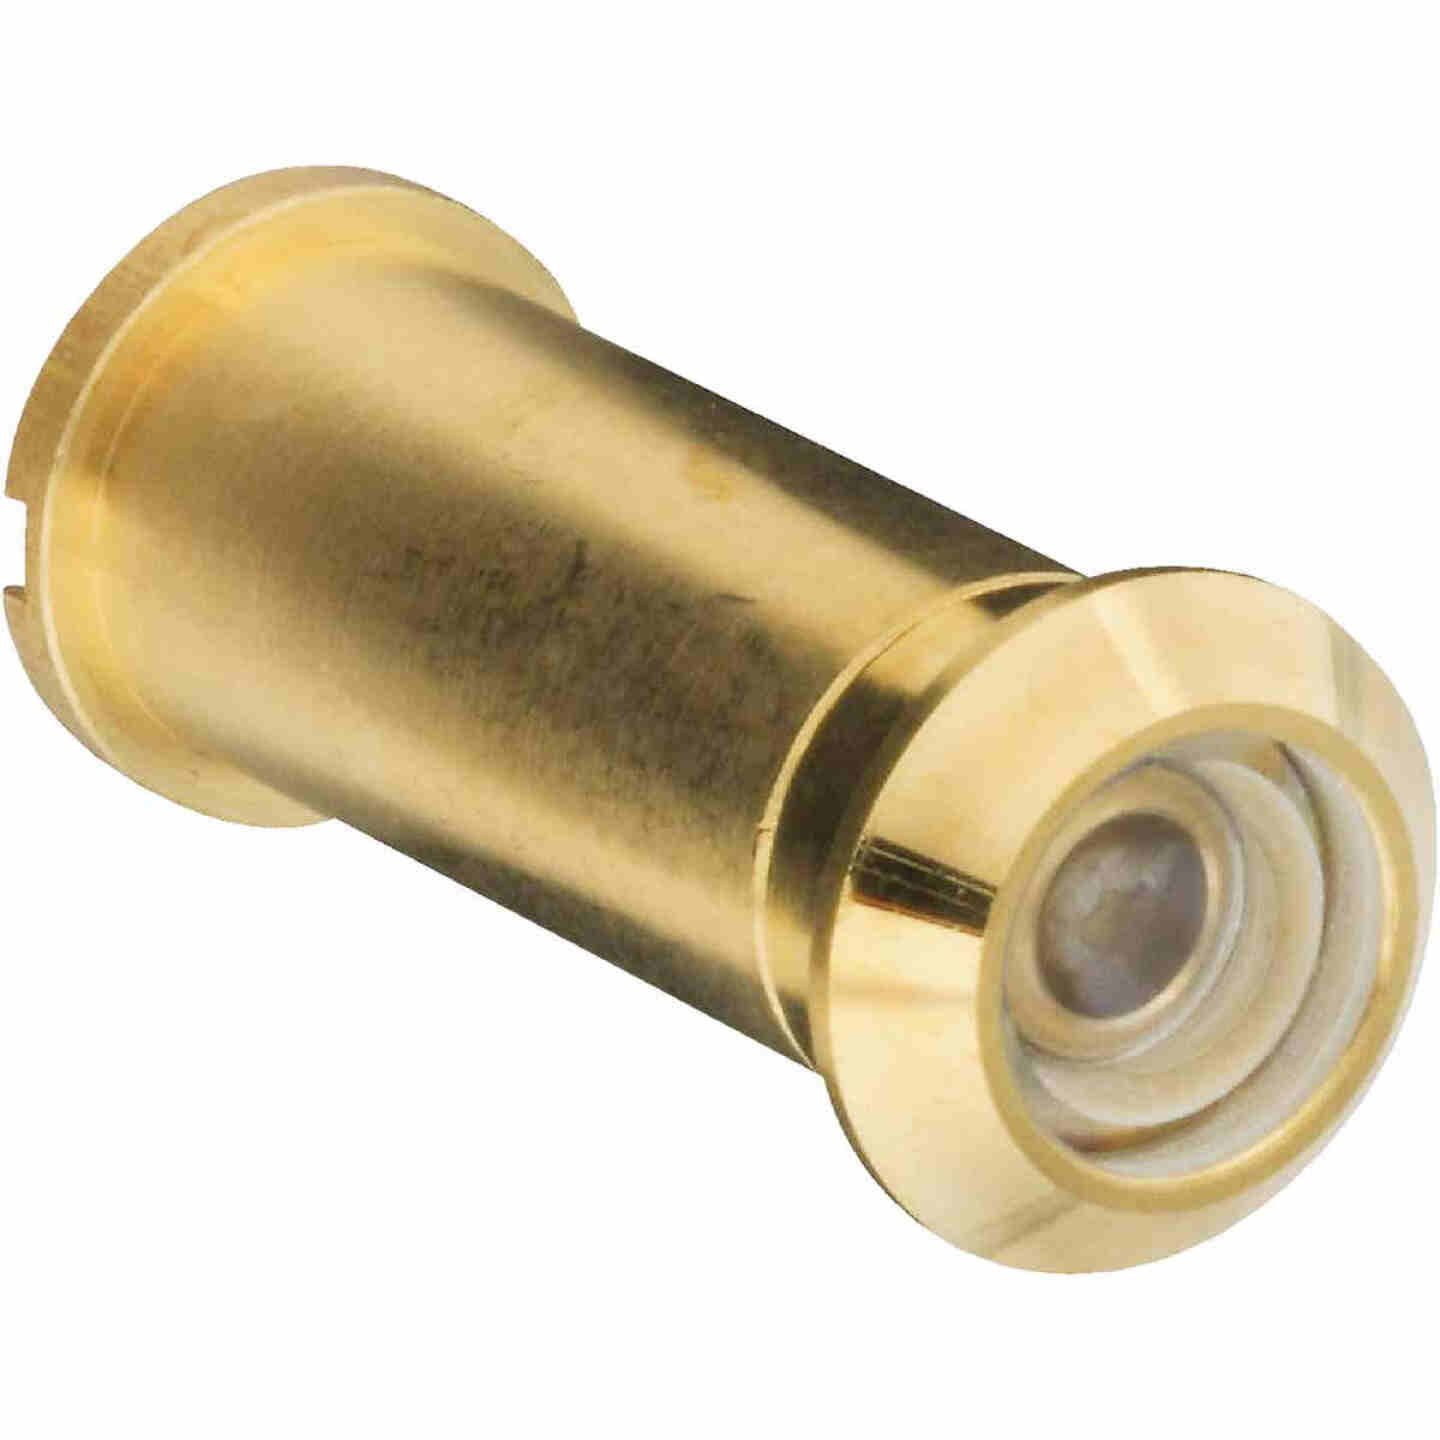 National Solid Brass 160 Degree Angle Door Viewer Image 1